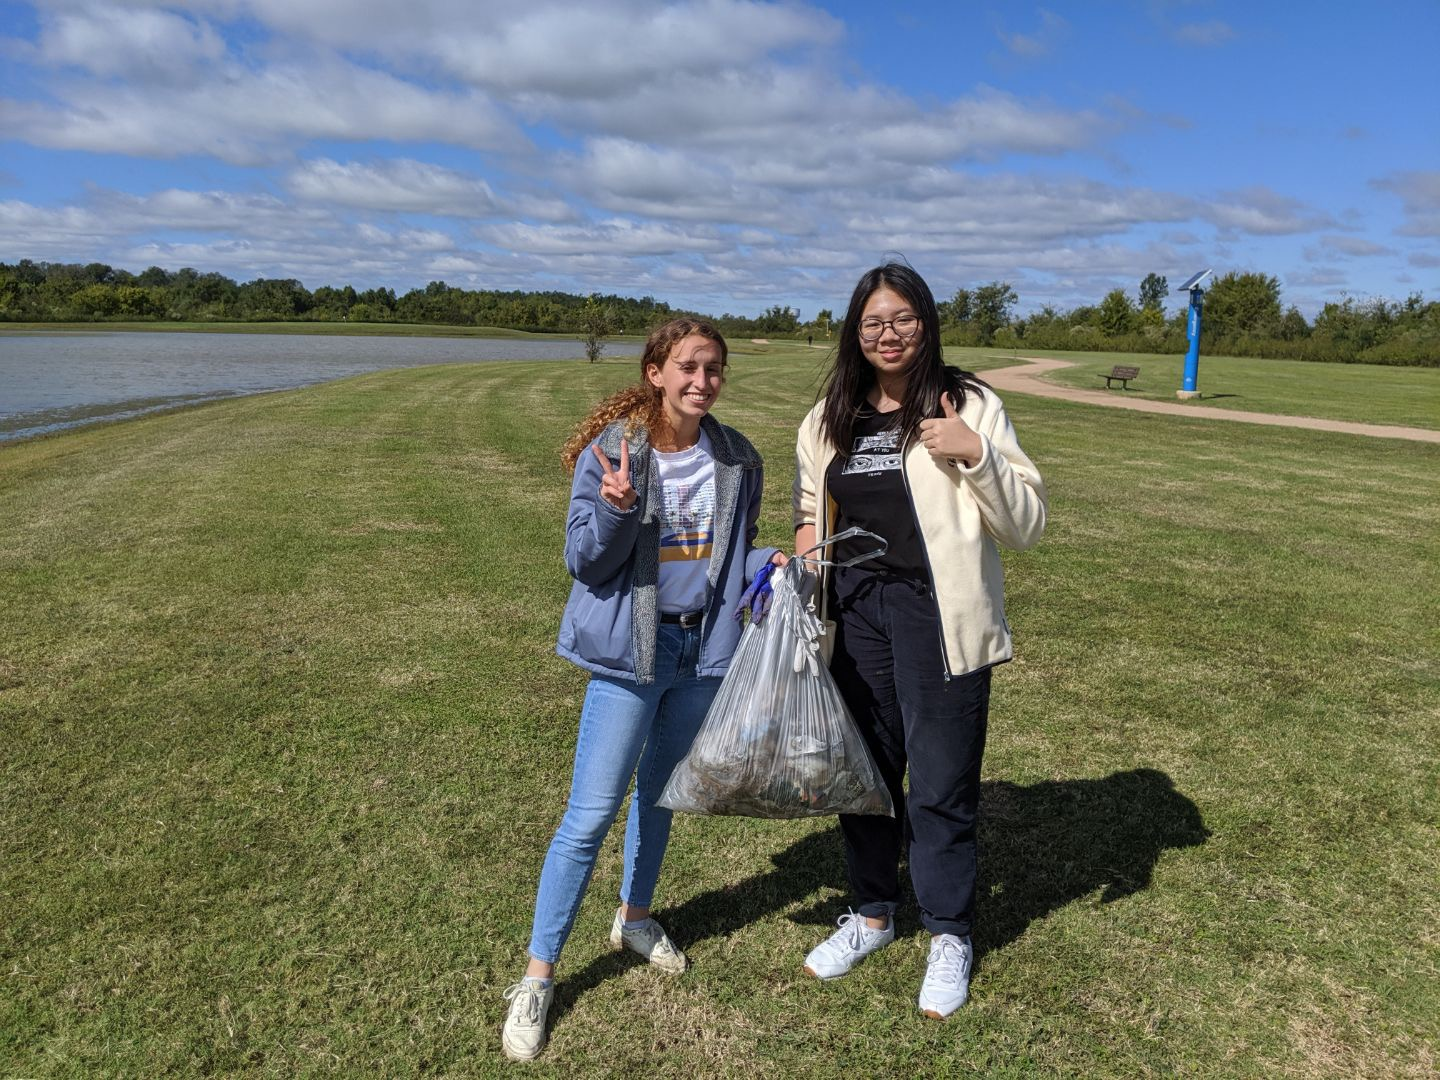 Ave Breeze(on the left) and a participate in the tree huggers club spend their saturday morning picking up trash at the sugarland park.